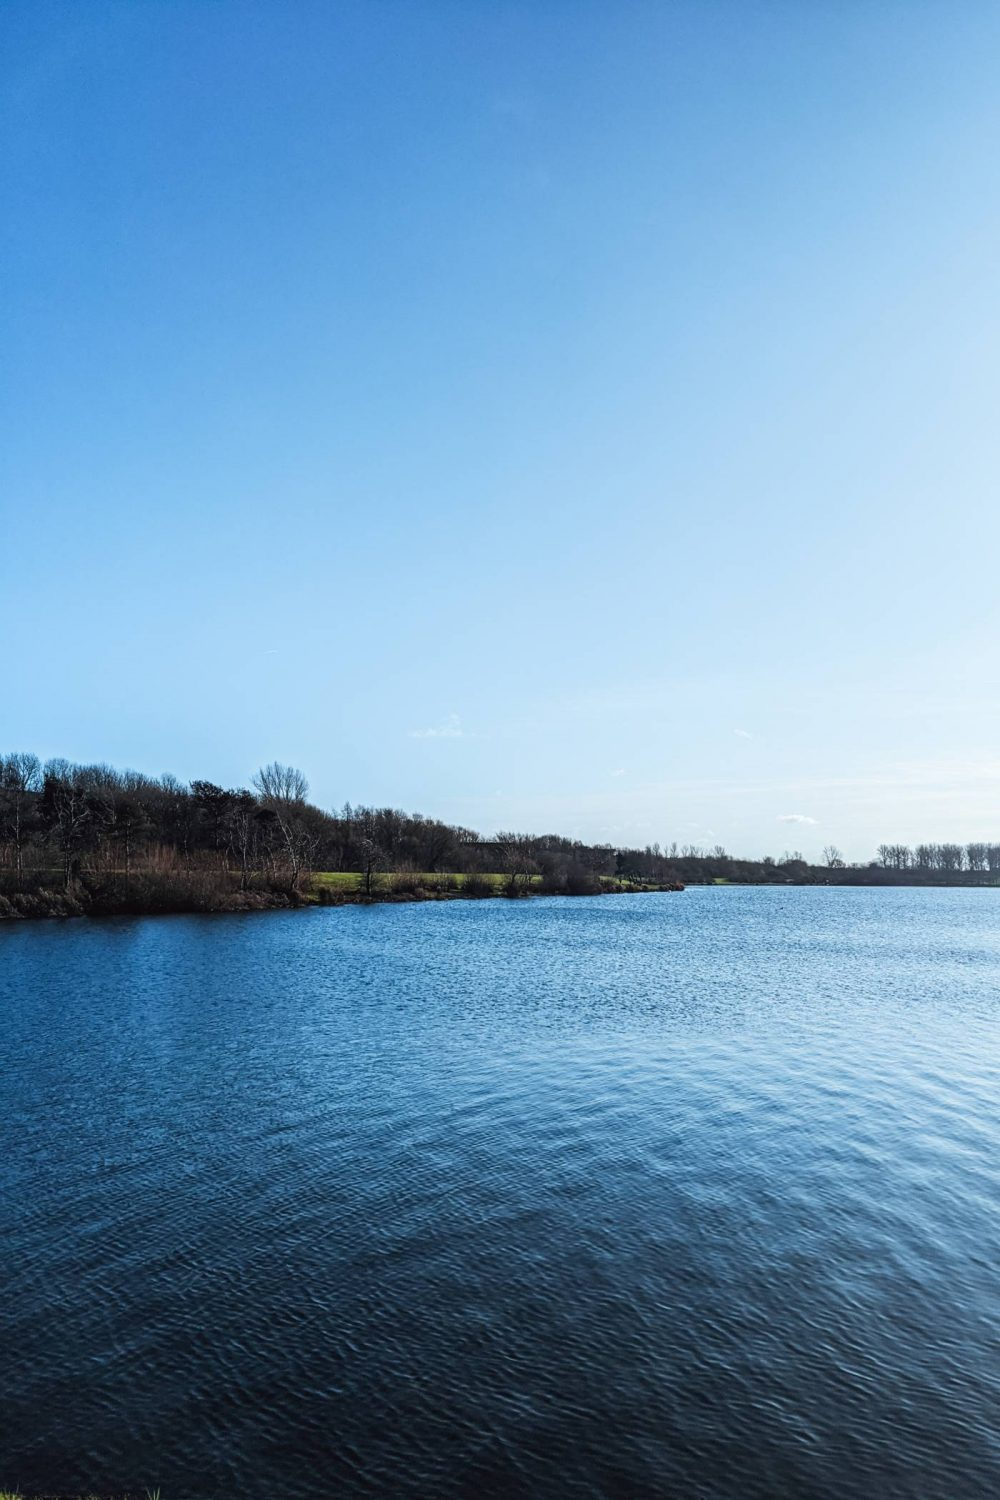 A photo of Willen Lake, Milton Keynes on a clear, sunny day